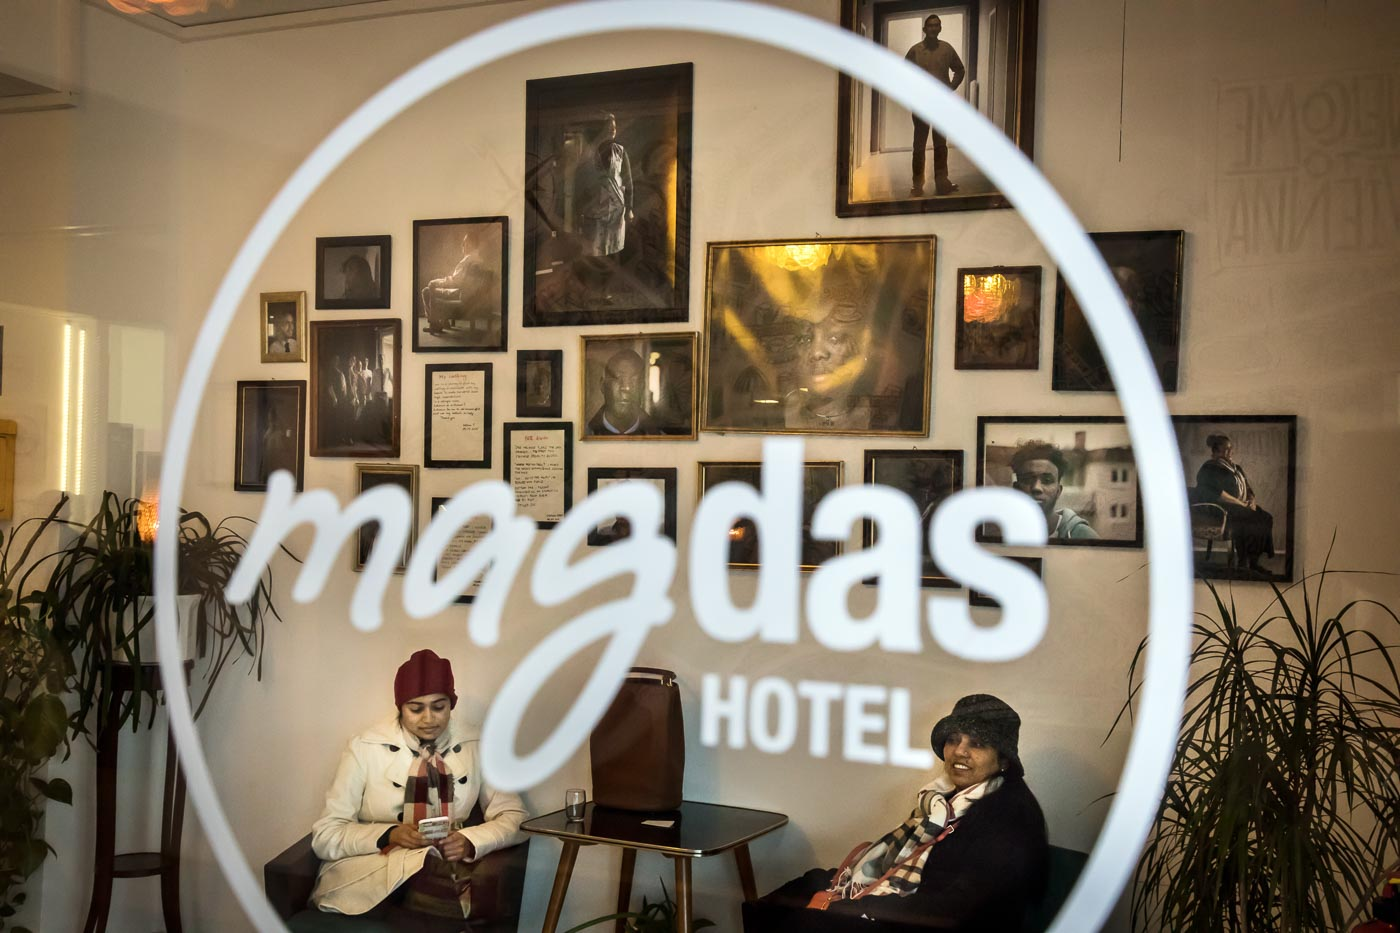 AUSTRIA. Refugees welcome globetrotters to Vienna's open-minded hotel.